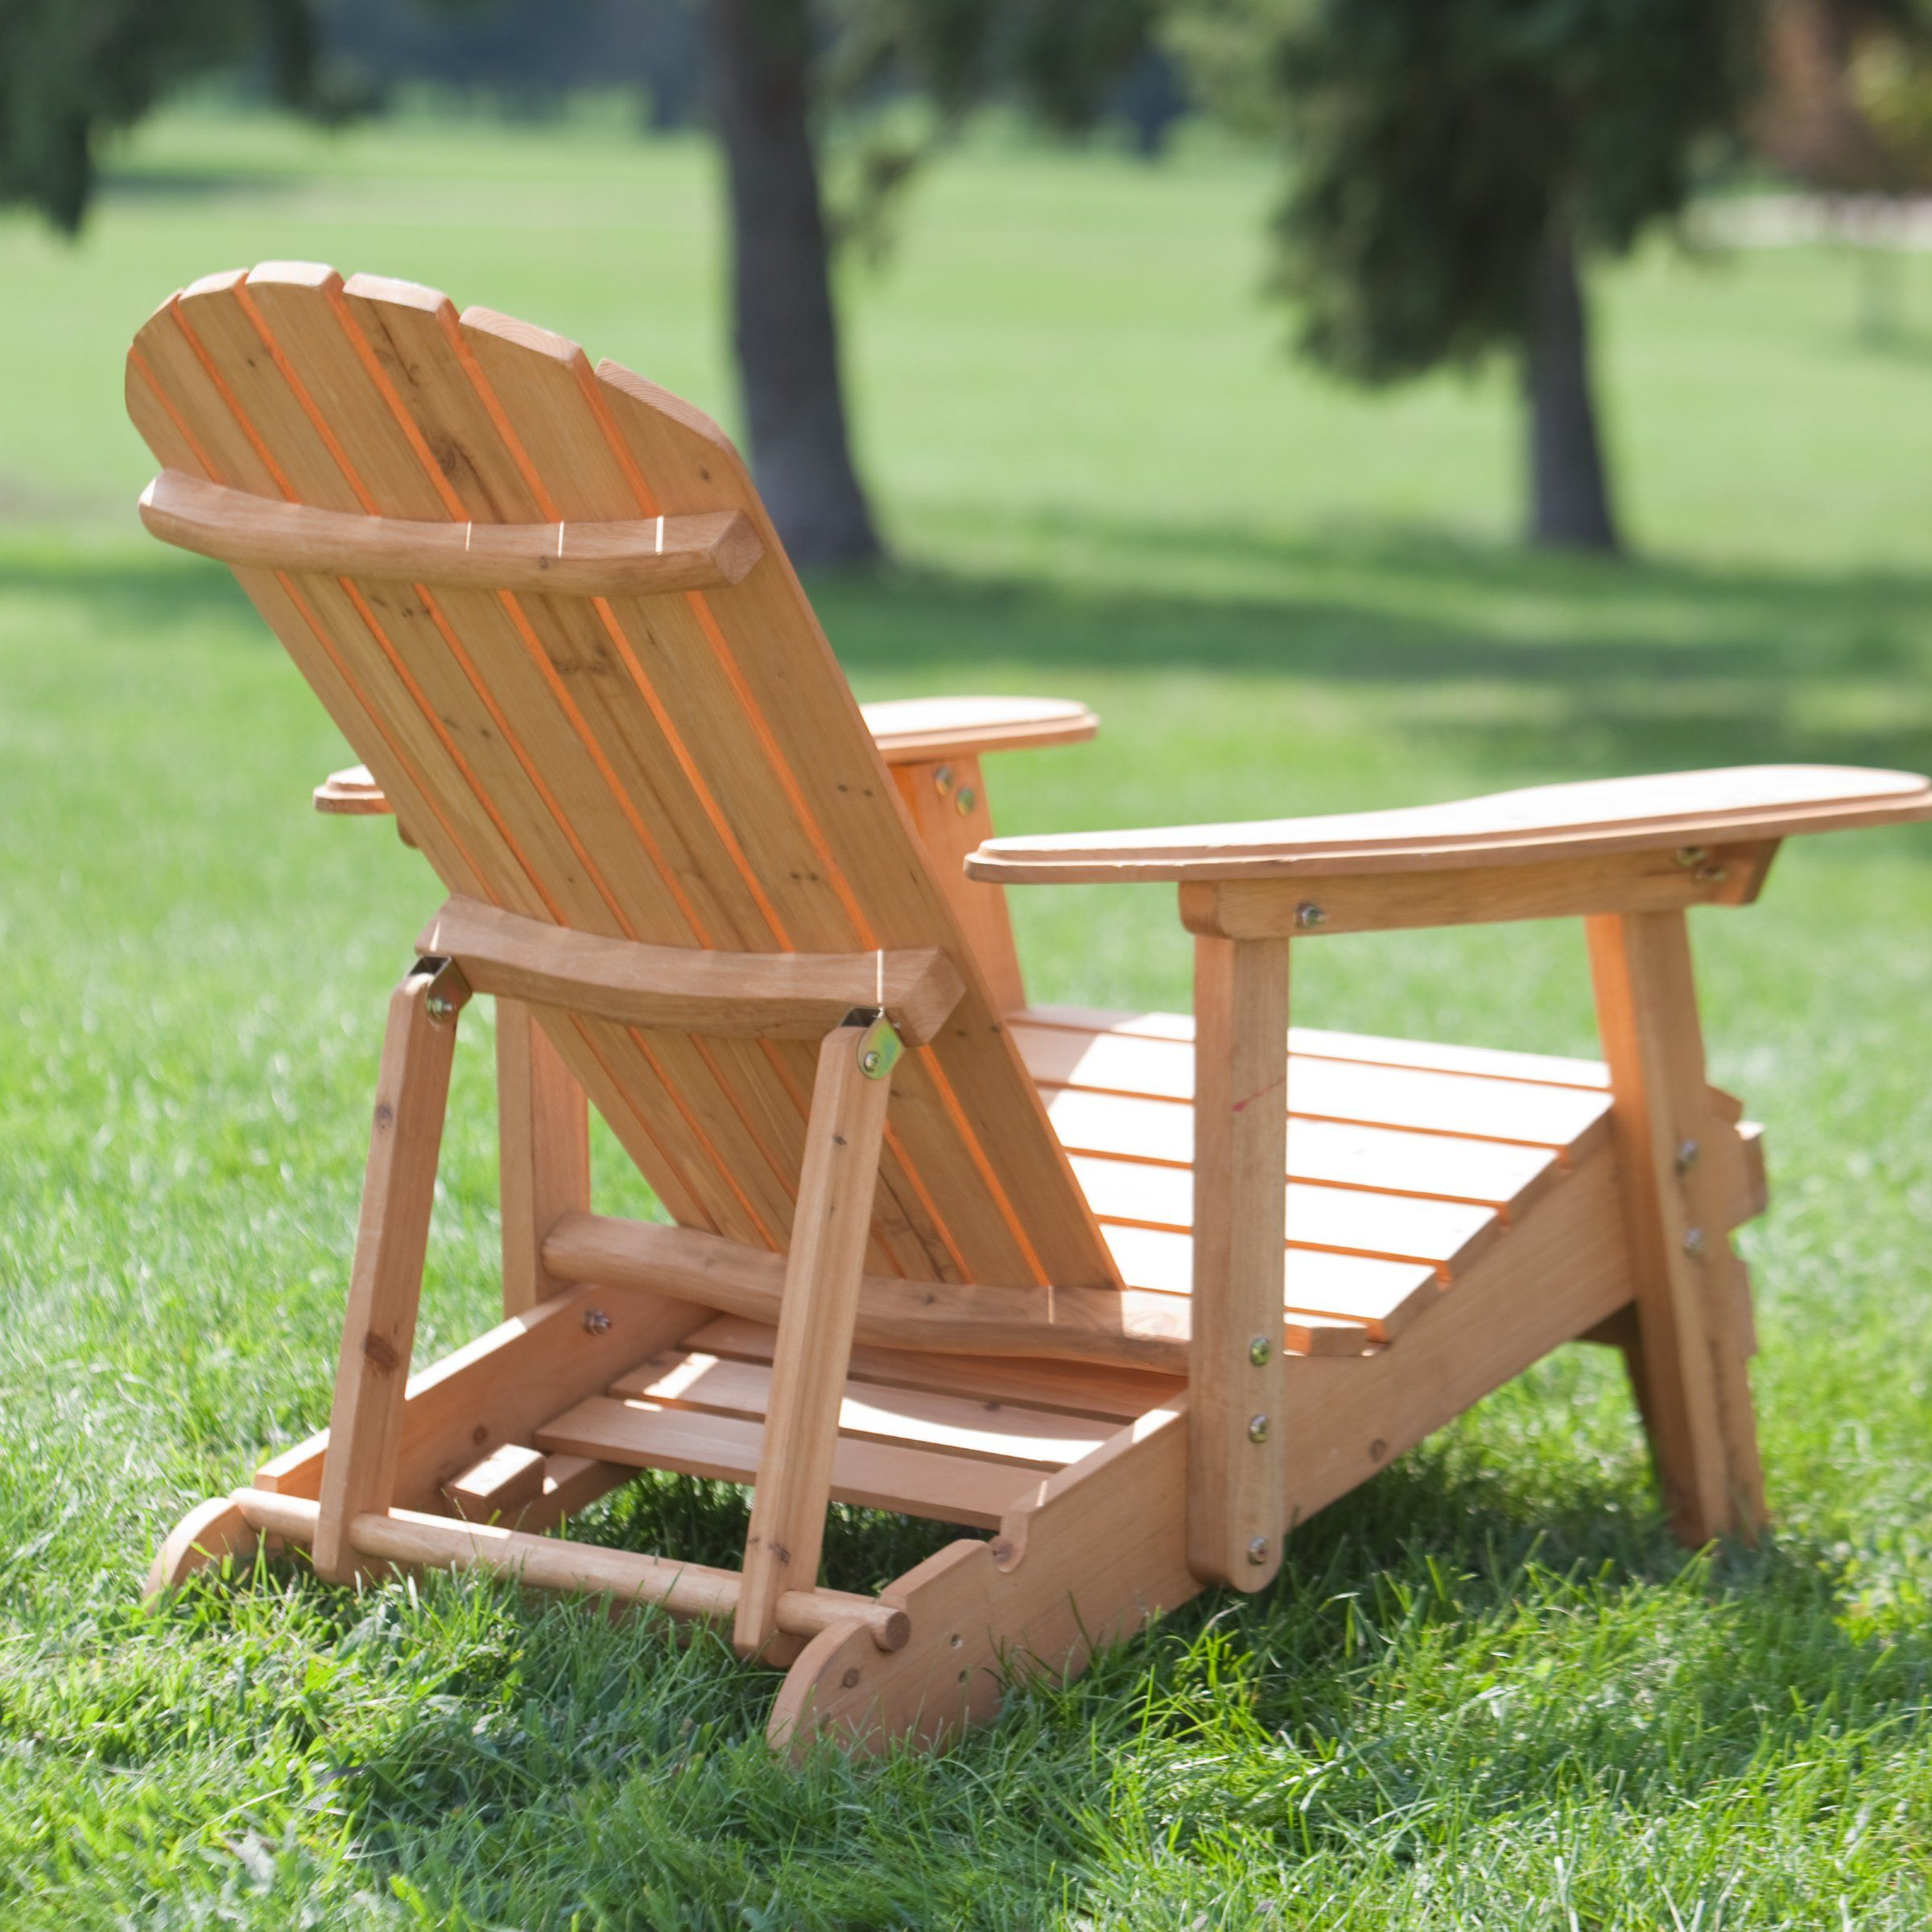 miraculous house ll outdoor chair chairs bean your inside wood inspiration furniture composite adirondack lounger